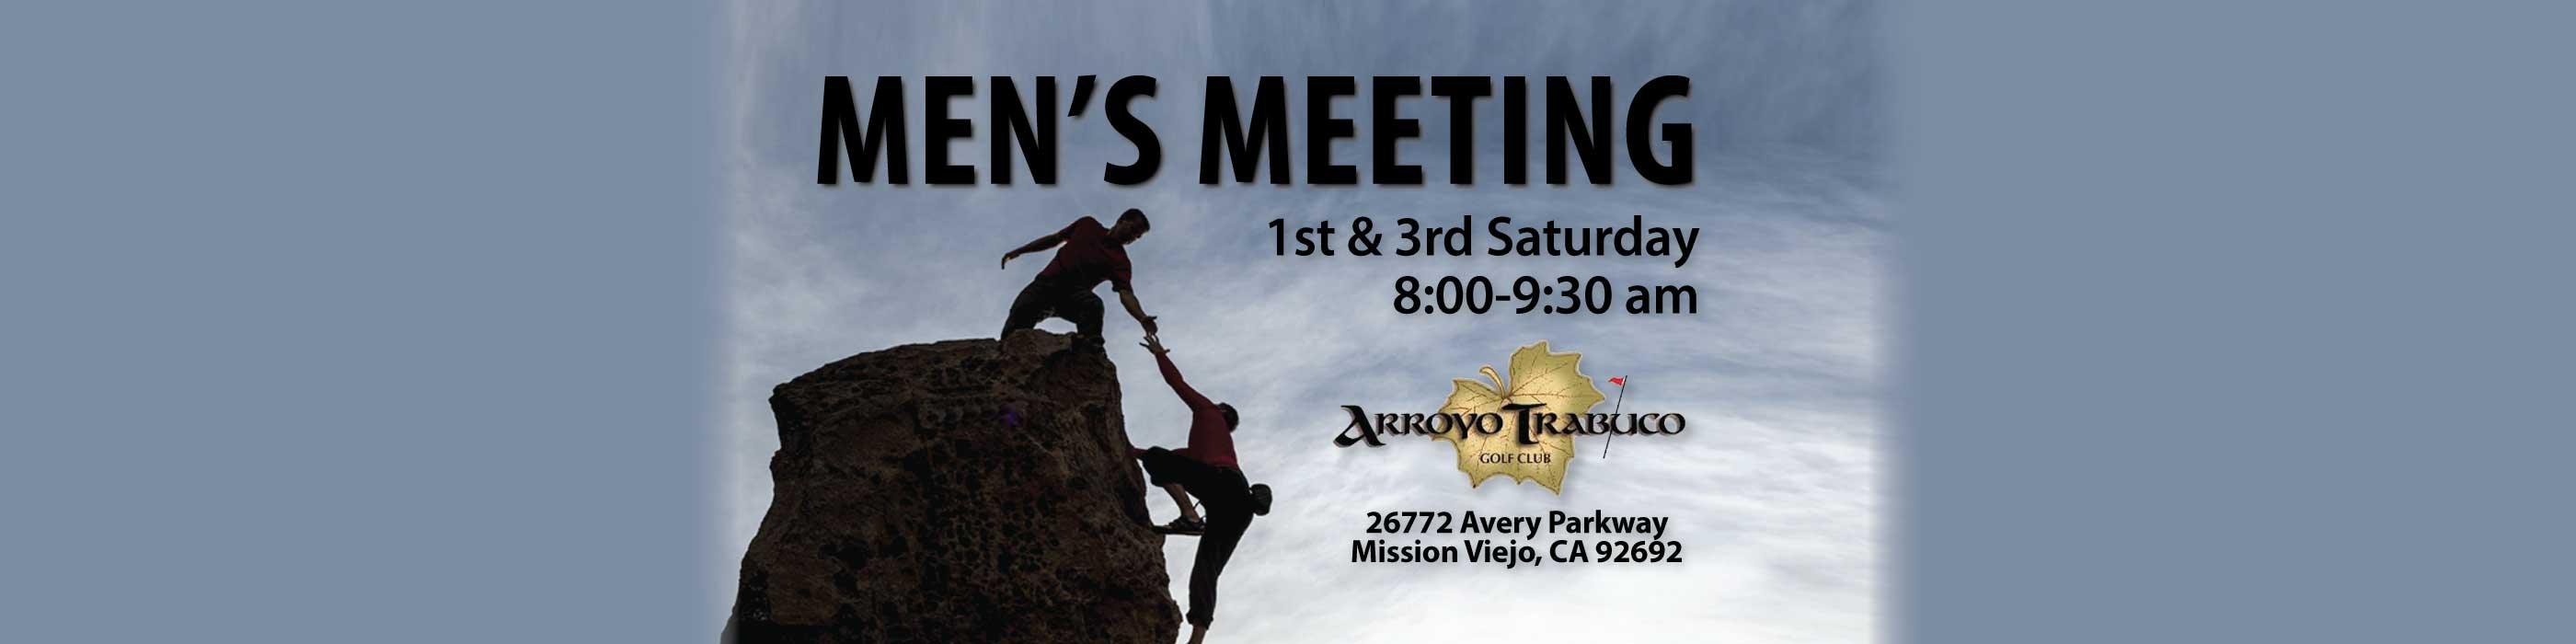 Summit-Mens-Meetings-Arroyo-Trabuco-web-2800x700